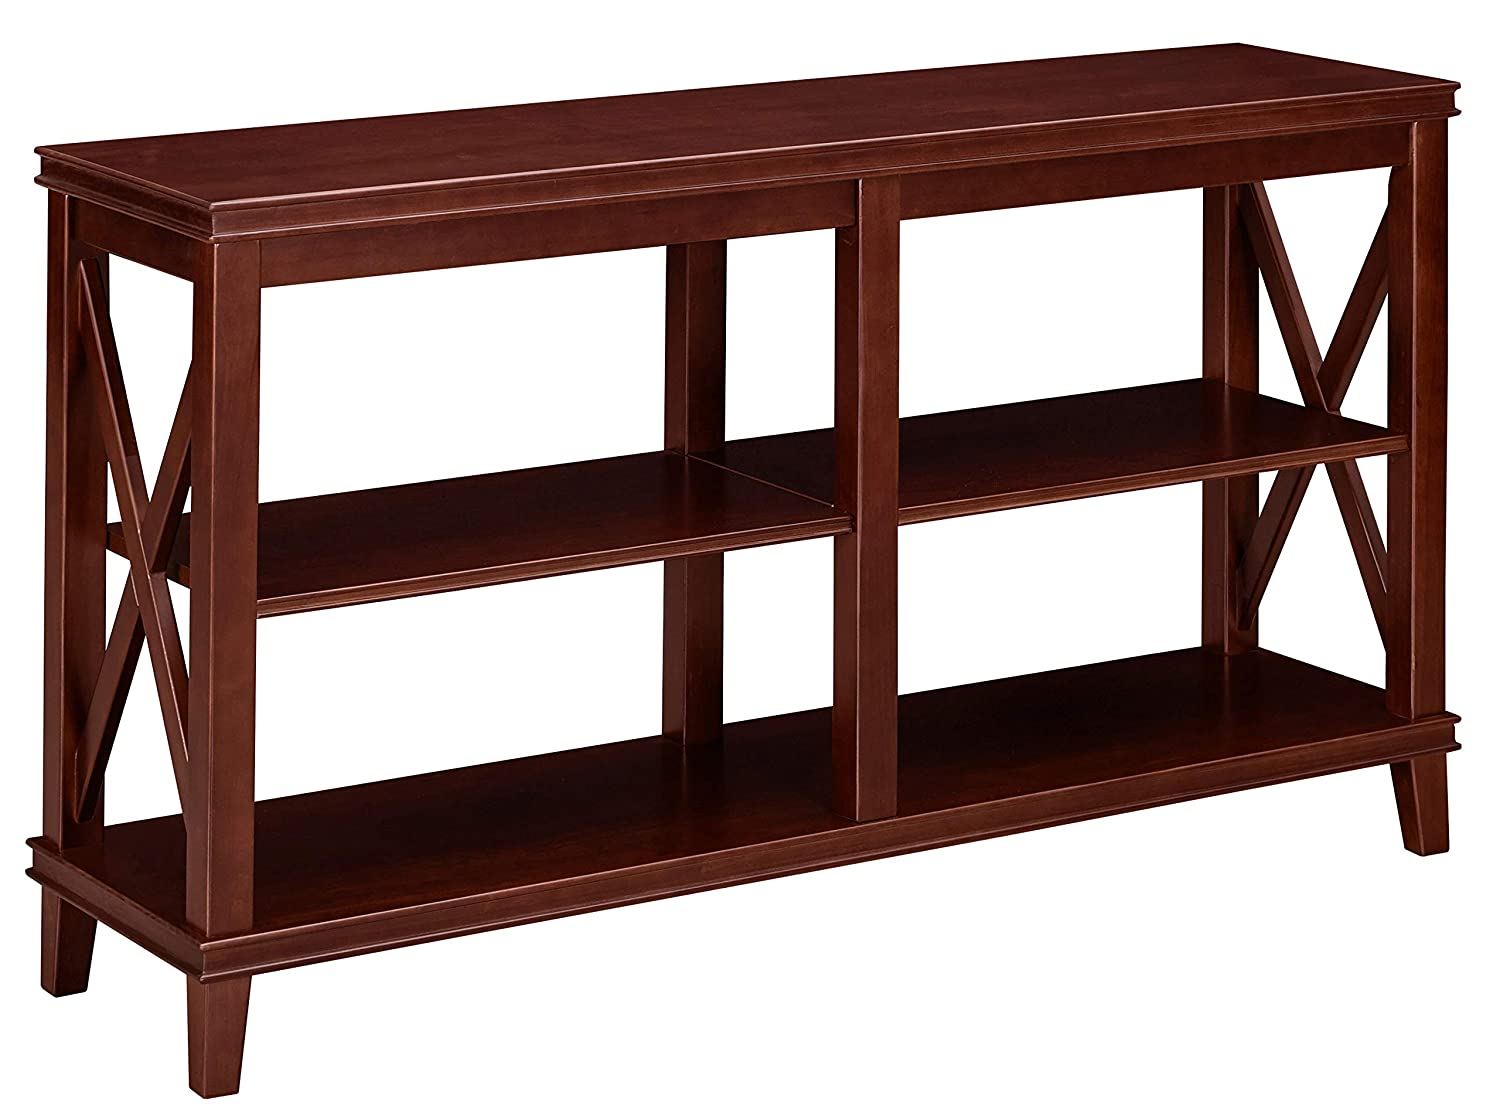 Ravenna Home Wheeler 3-Shelf Wood Storage TV Console Table Stand, 54 W, Dark Espresso